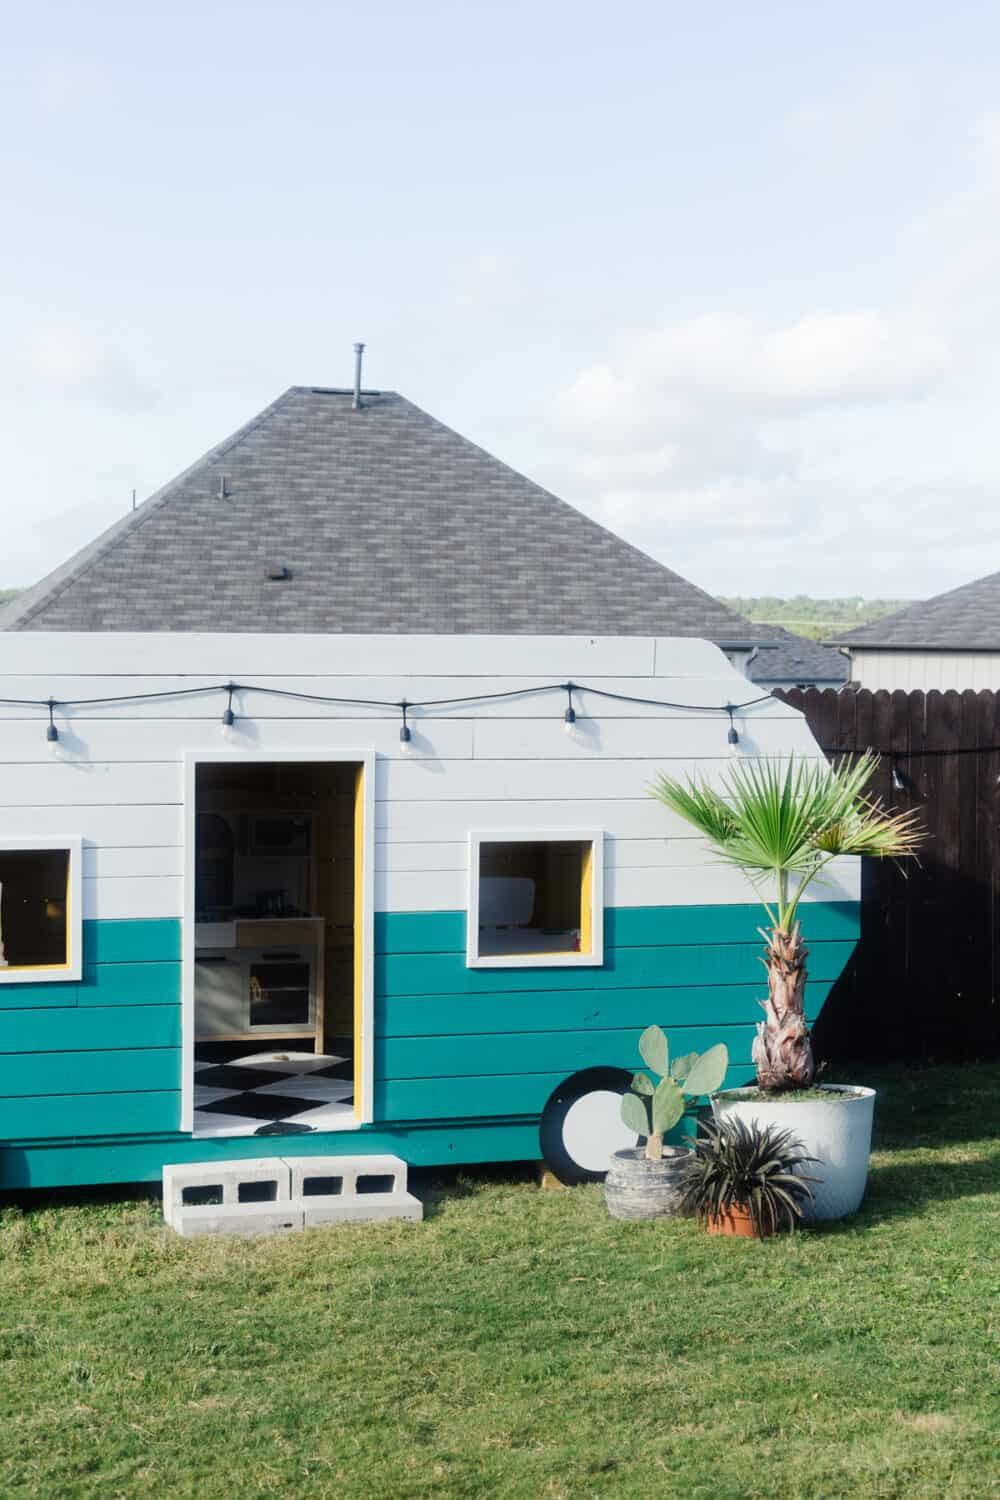 A playhouse shaped and styled like a vintage camper